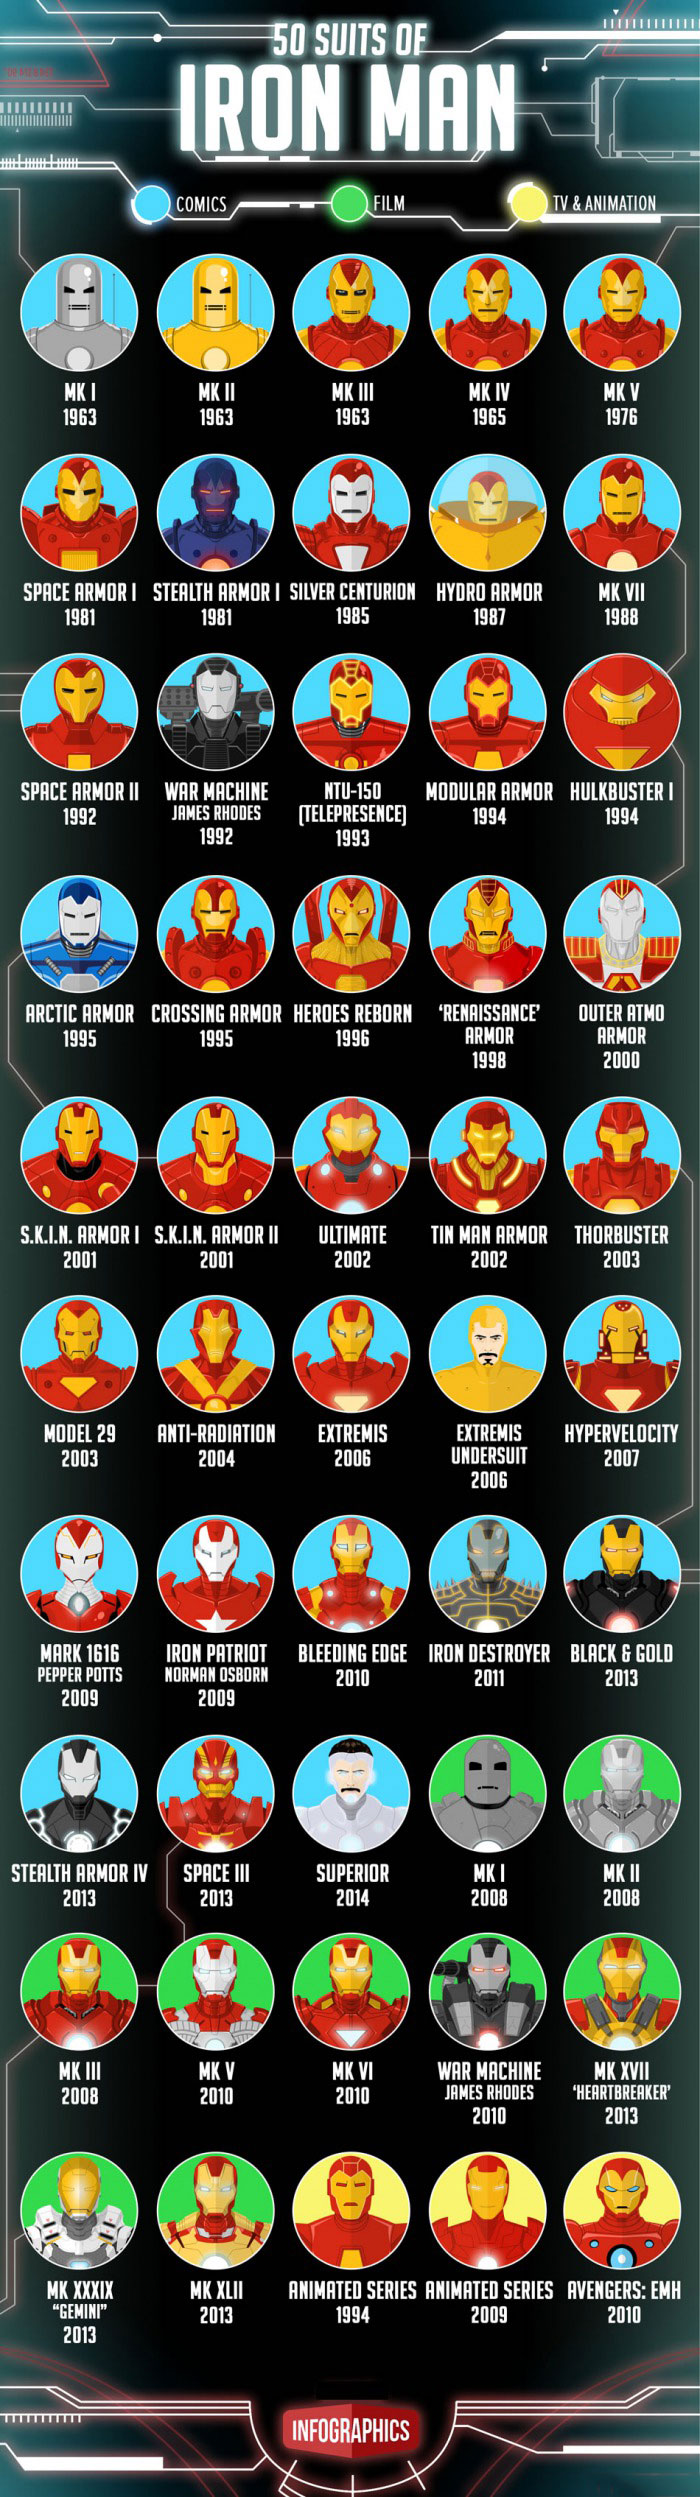 50 suits of iron man, marvel infographics